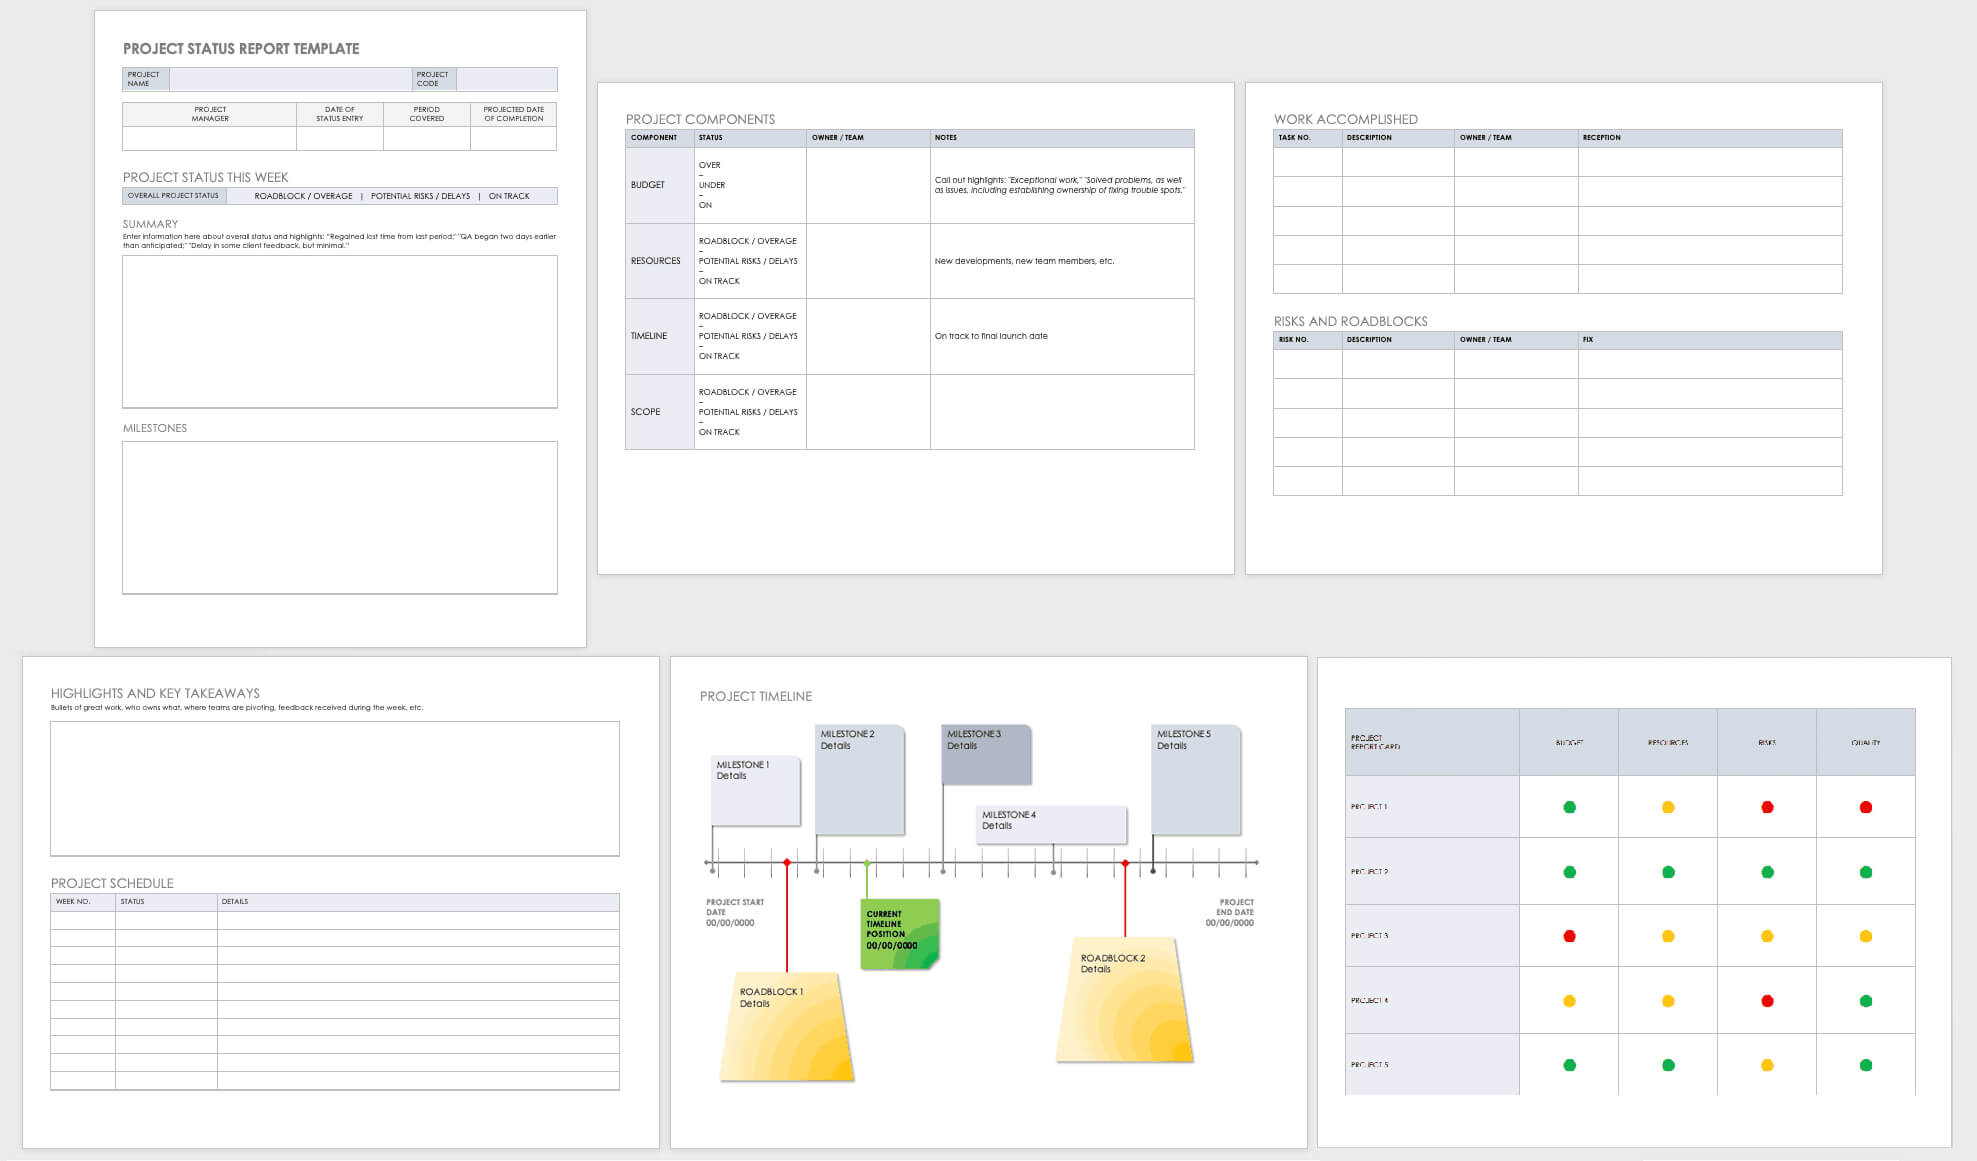 Free Project Report Templates | Smartsheet Throughout Ms Word Templates For Project Report